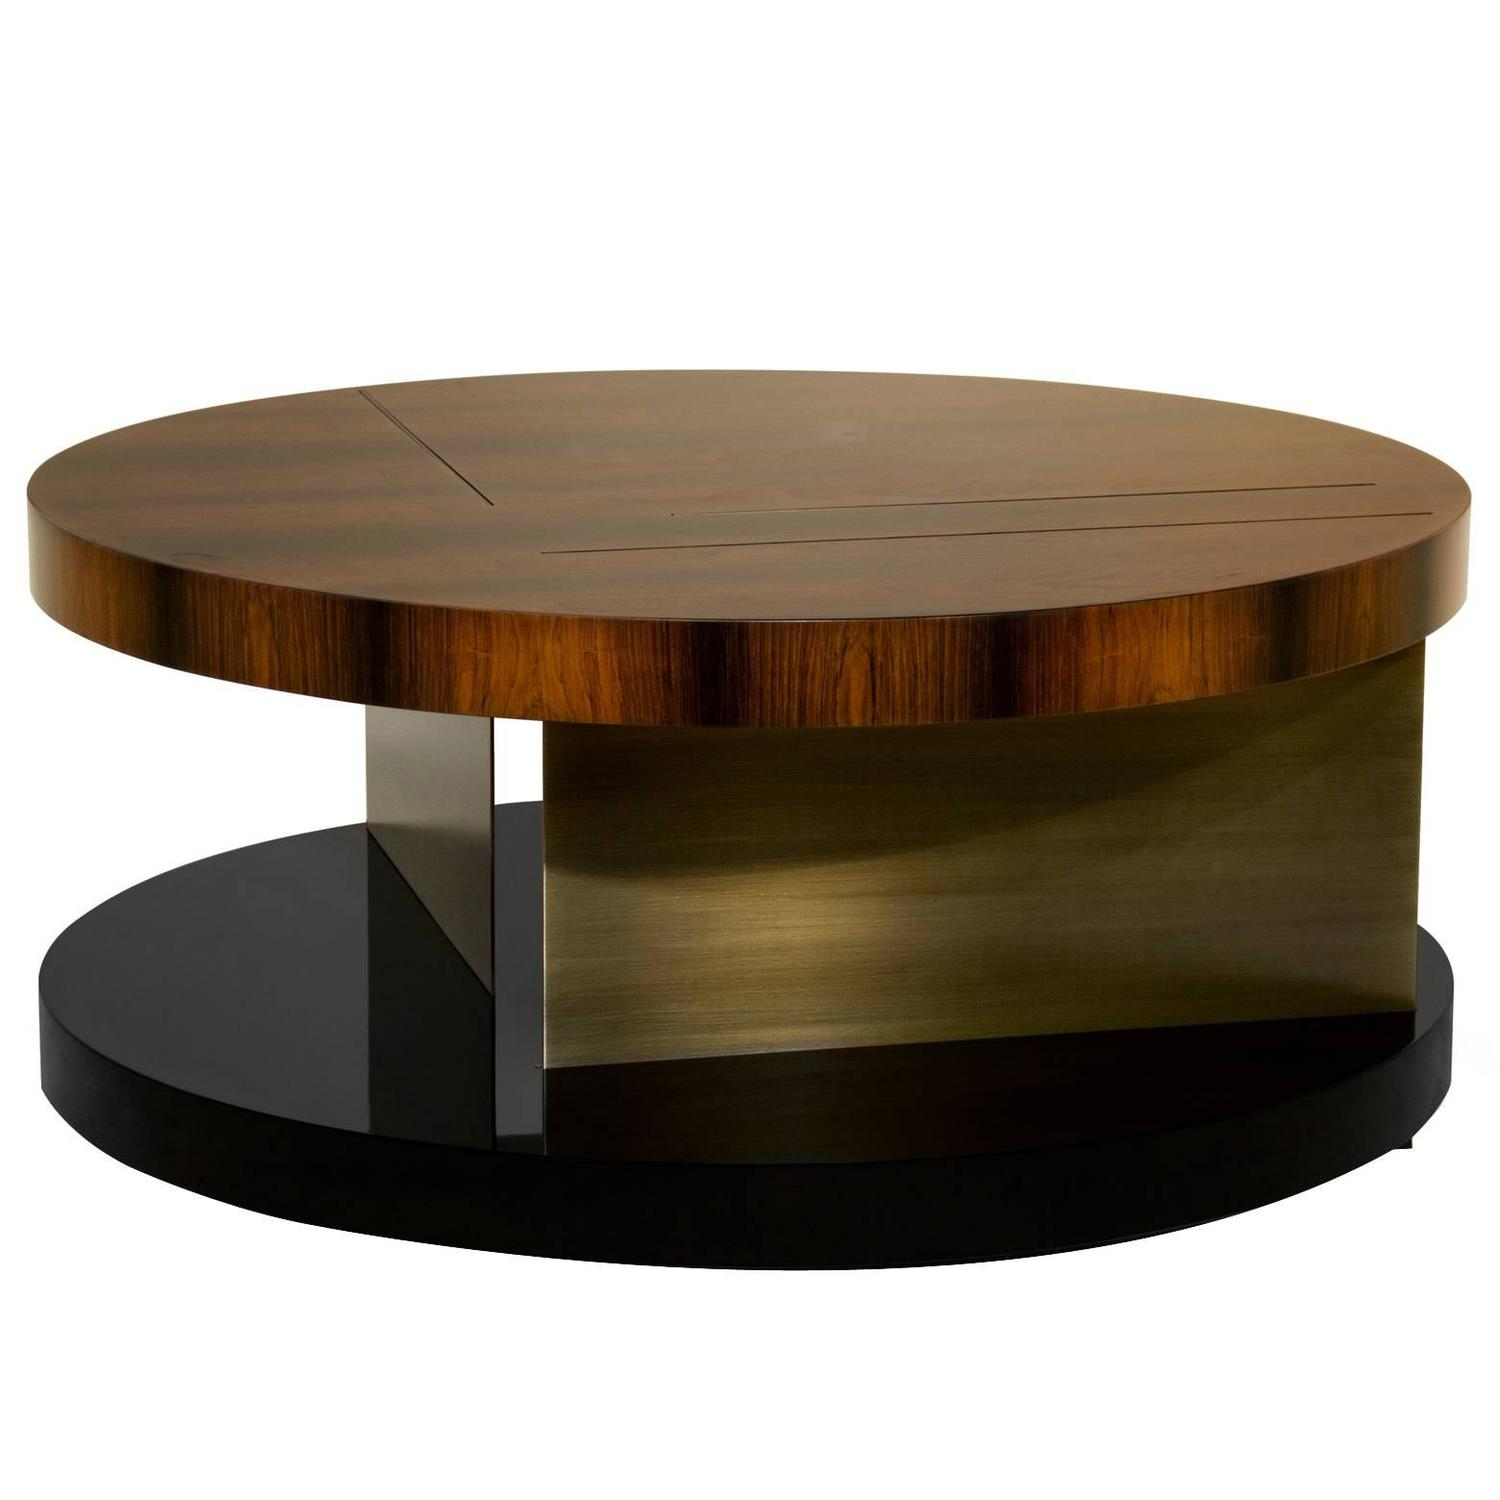 Chloe round coffee table with high glossy lacquer veneer wood and brass for sale at 1stdibs Brass round coffee table